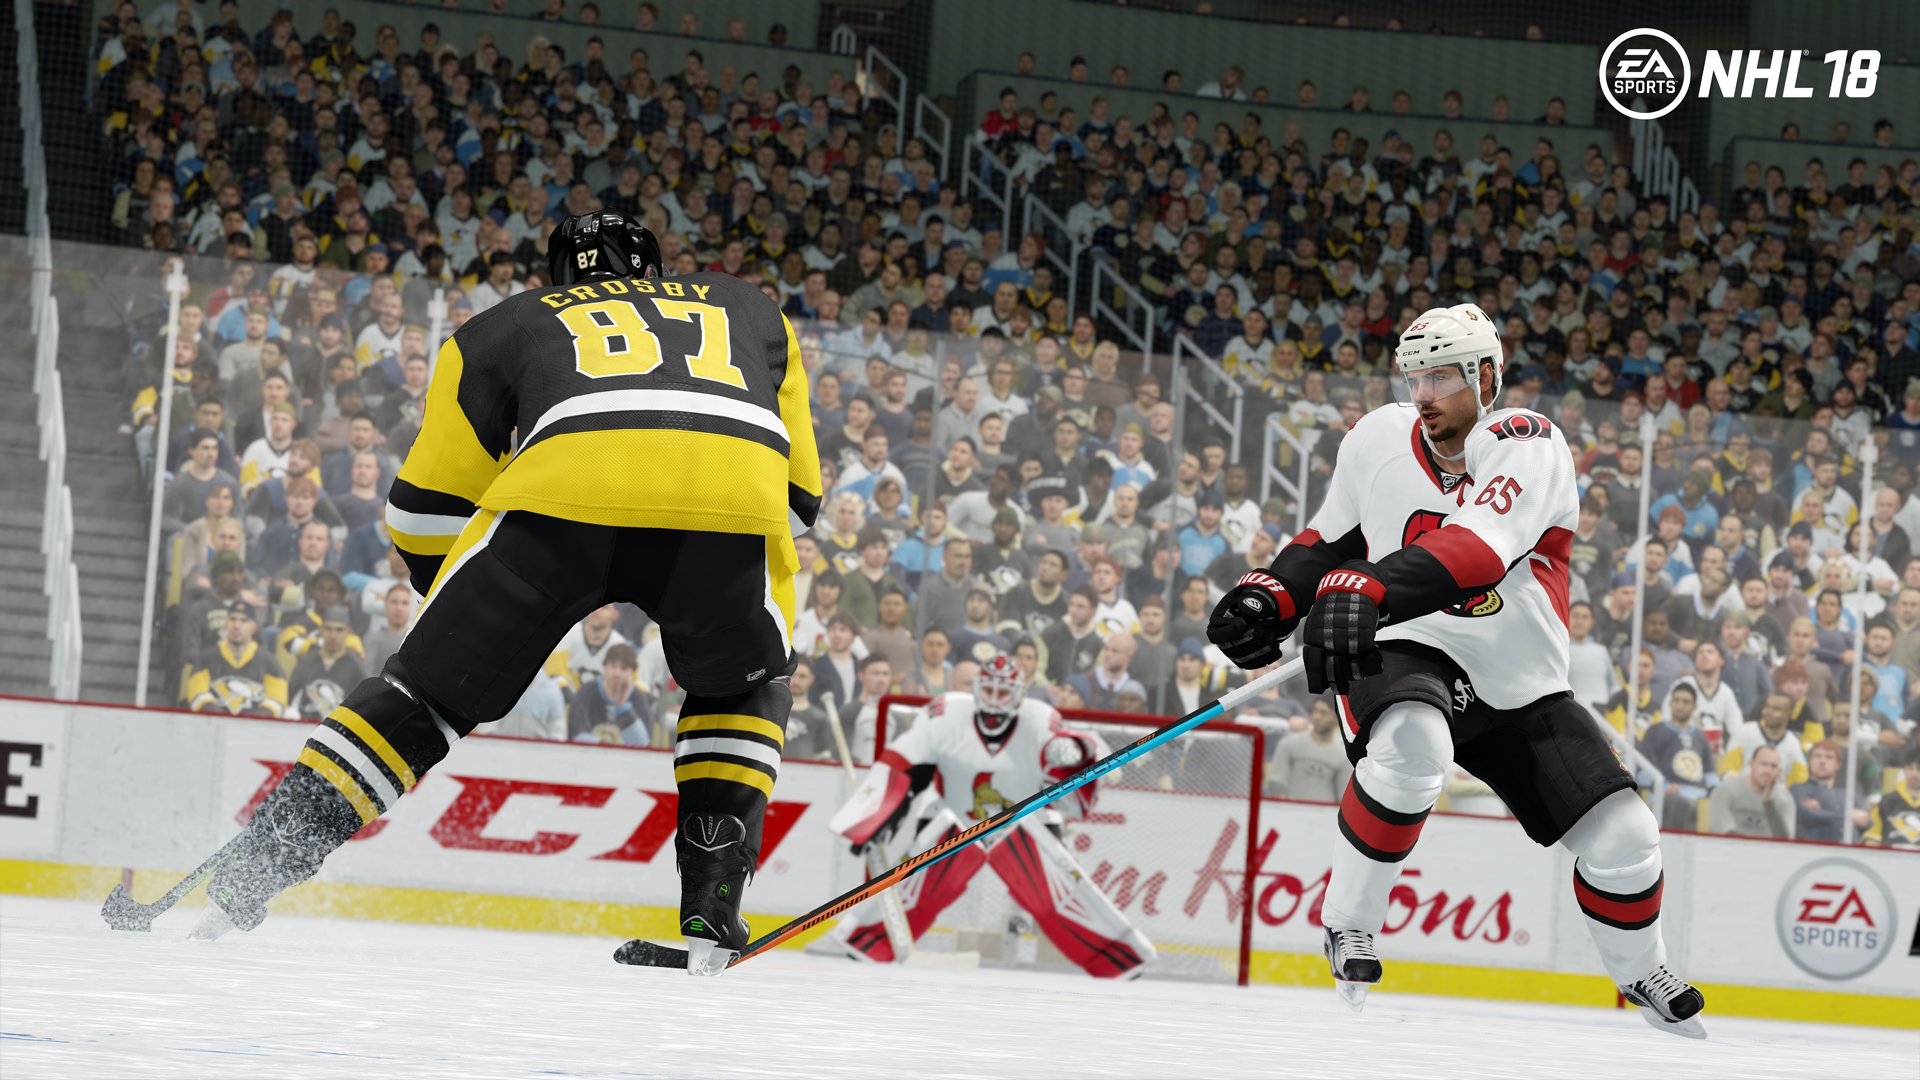 5 Things We Learned From Our Hands-On Time With NHL 18